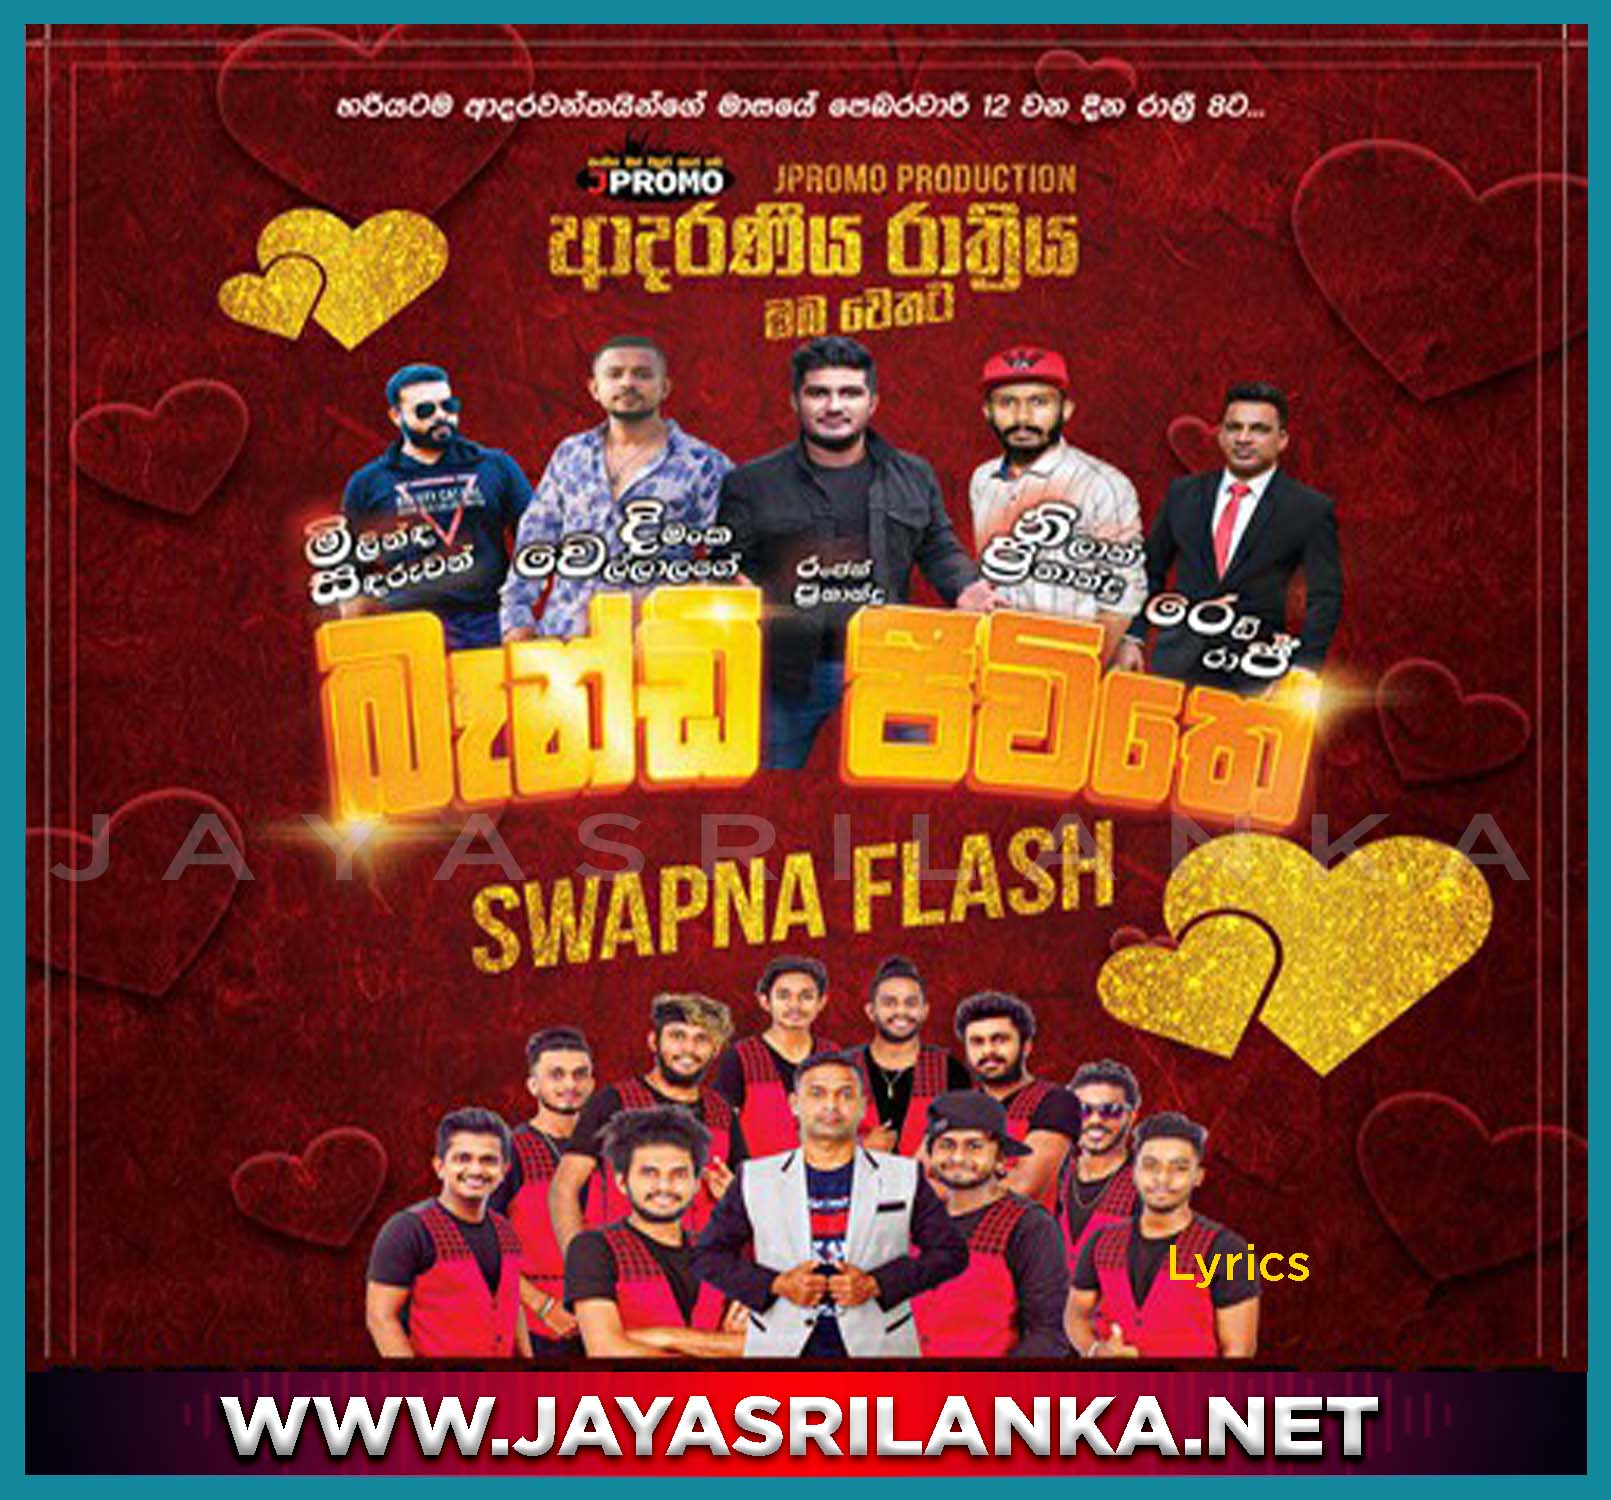 Soduru Athithaye - Swapna Flash Mp3 Image